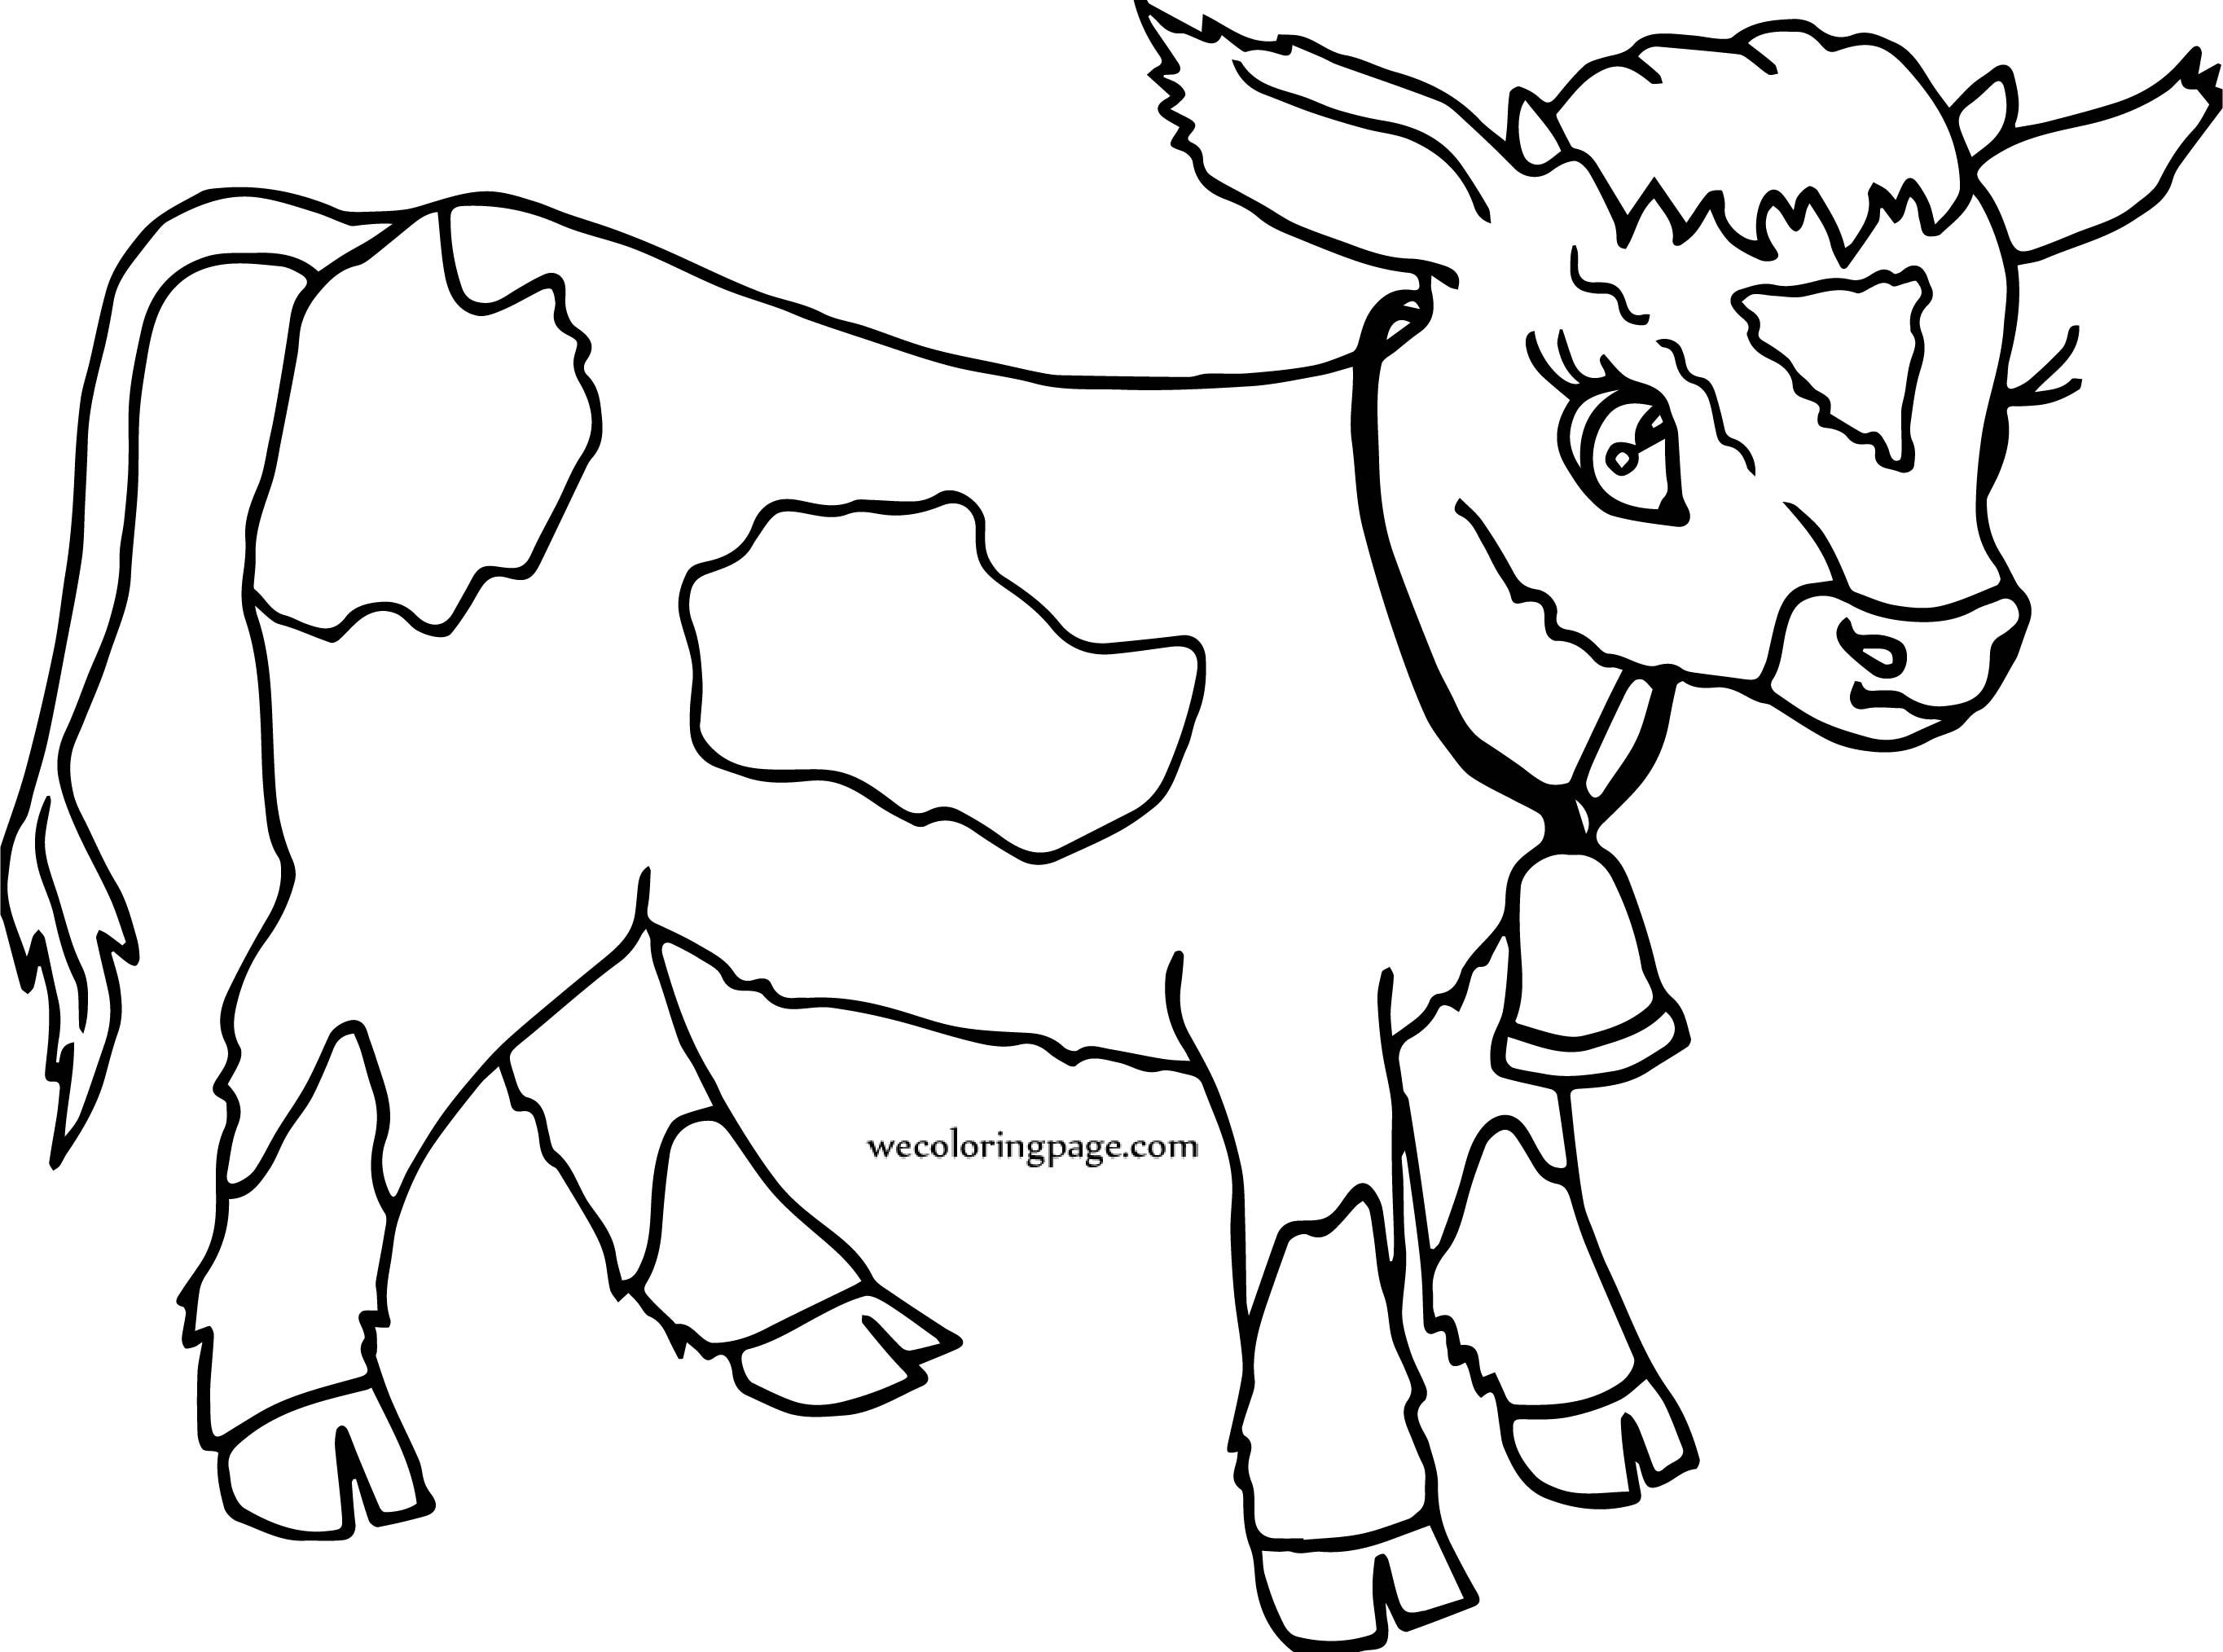 2729x2028 Cartoon Cow Calf Coat Coloring Page Wecoloringpage